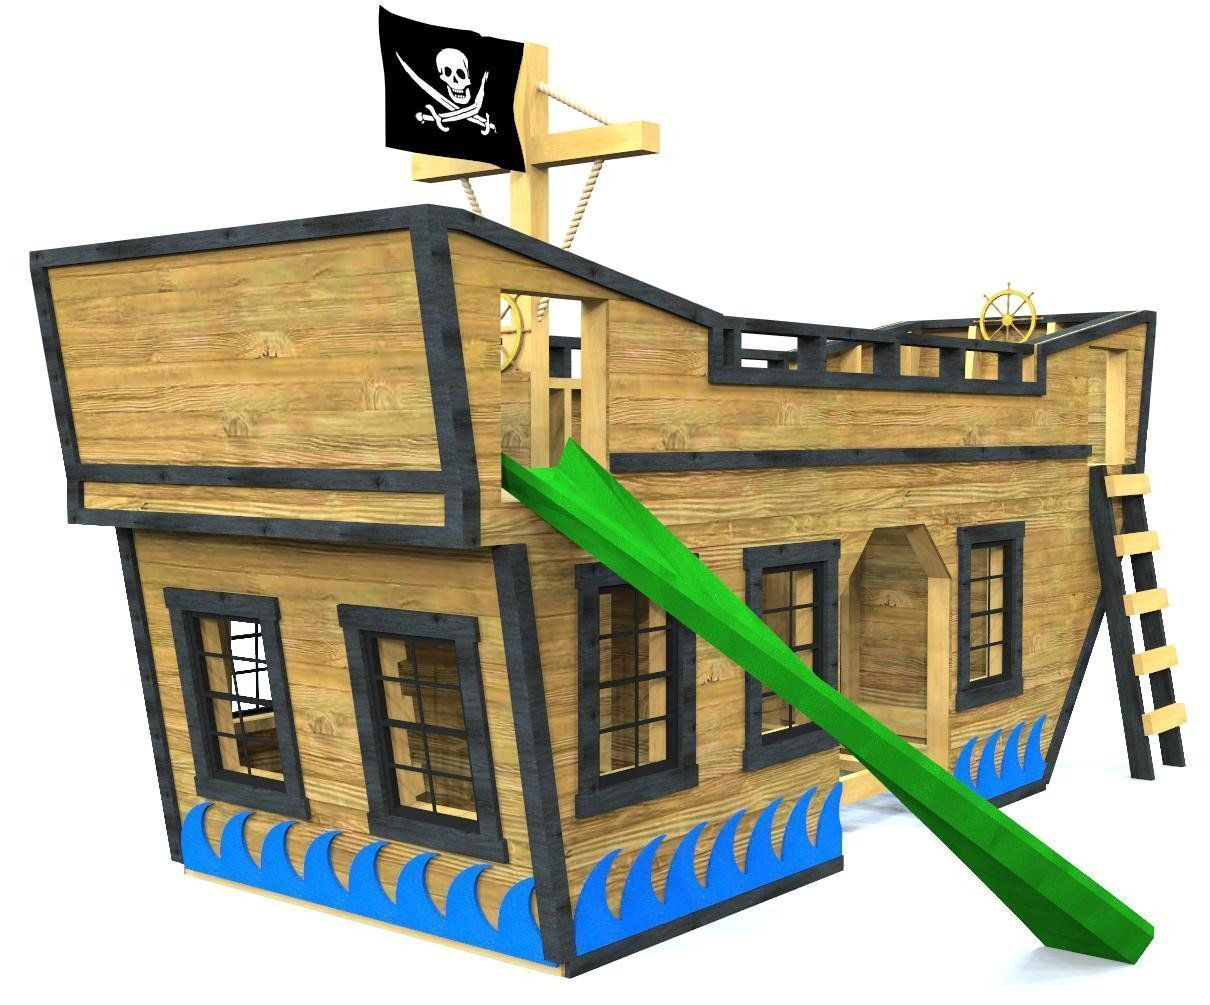 Cool Pirate Ship Bunk Bed With Slide Windows Ladder And Flag